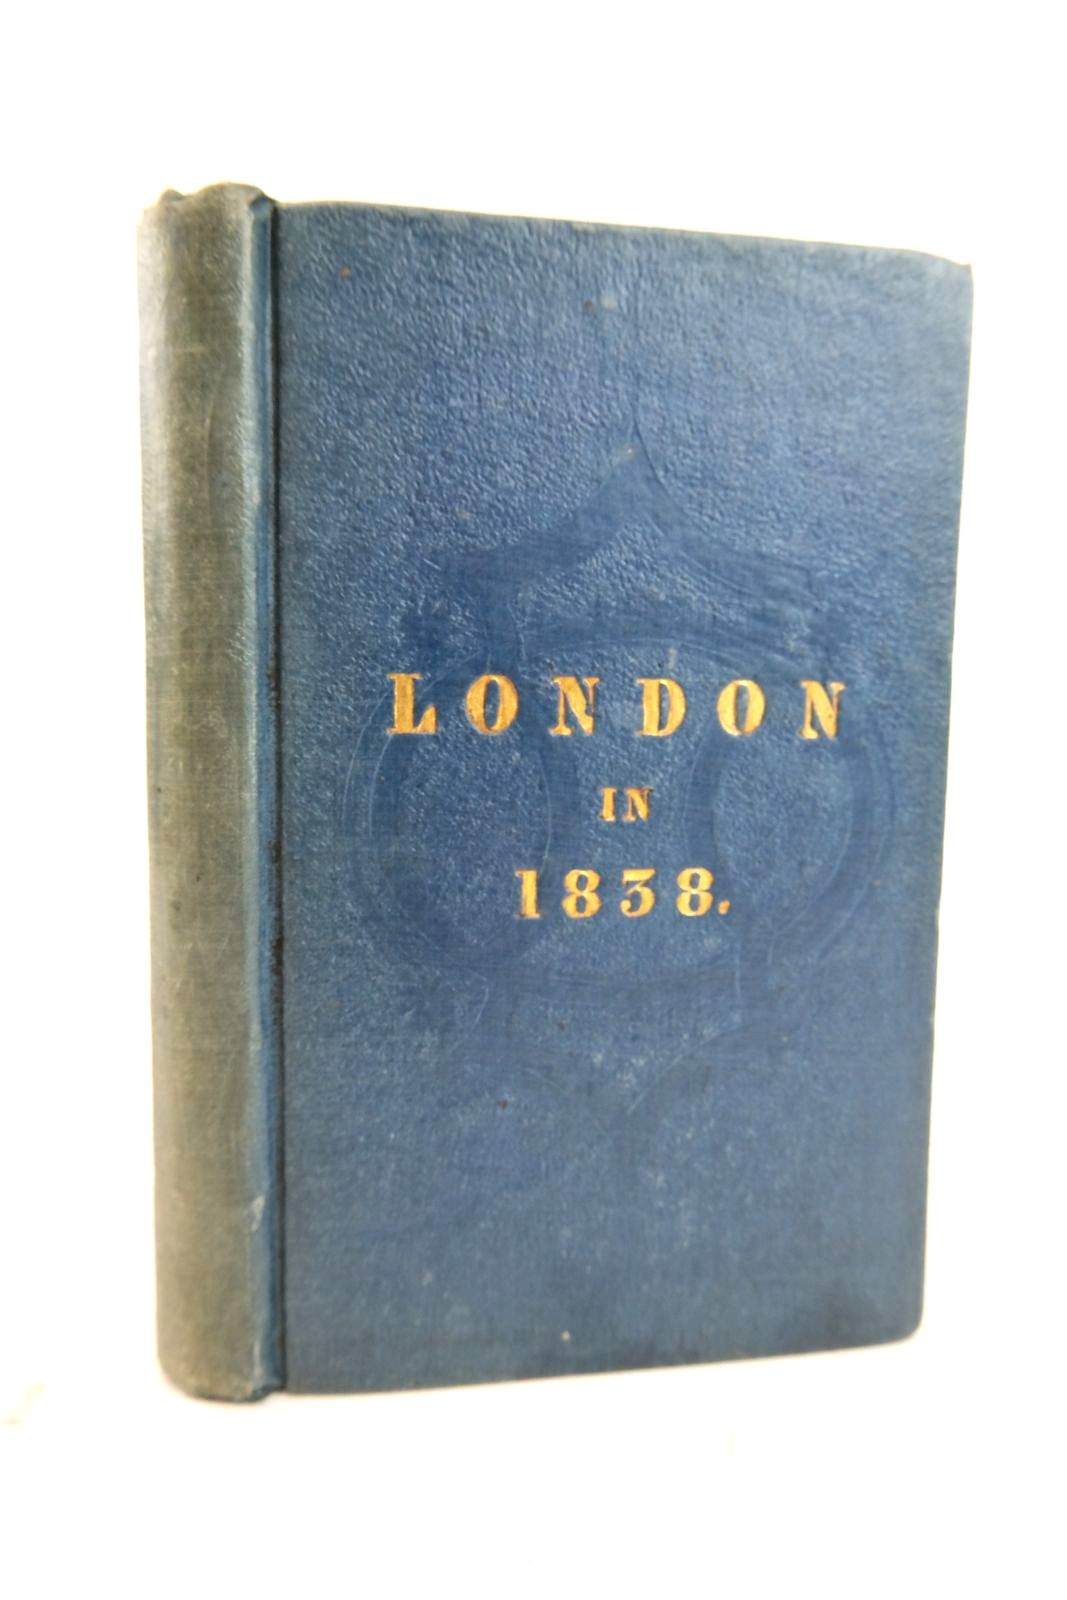 Photo of LONDON IN 1838 written by An American, published by Samuel Colman (STOCK CODE: 2133861)  for sale by Stella & Rose's Books